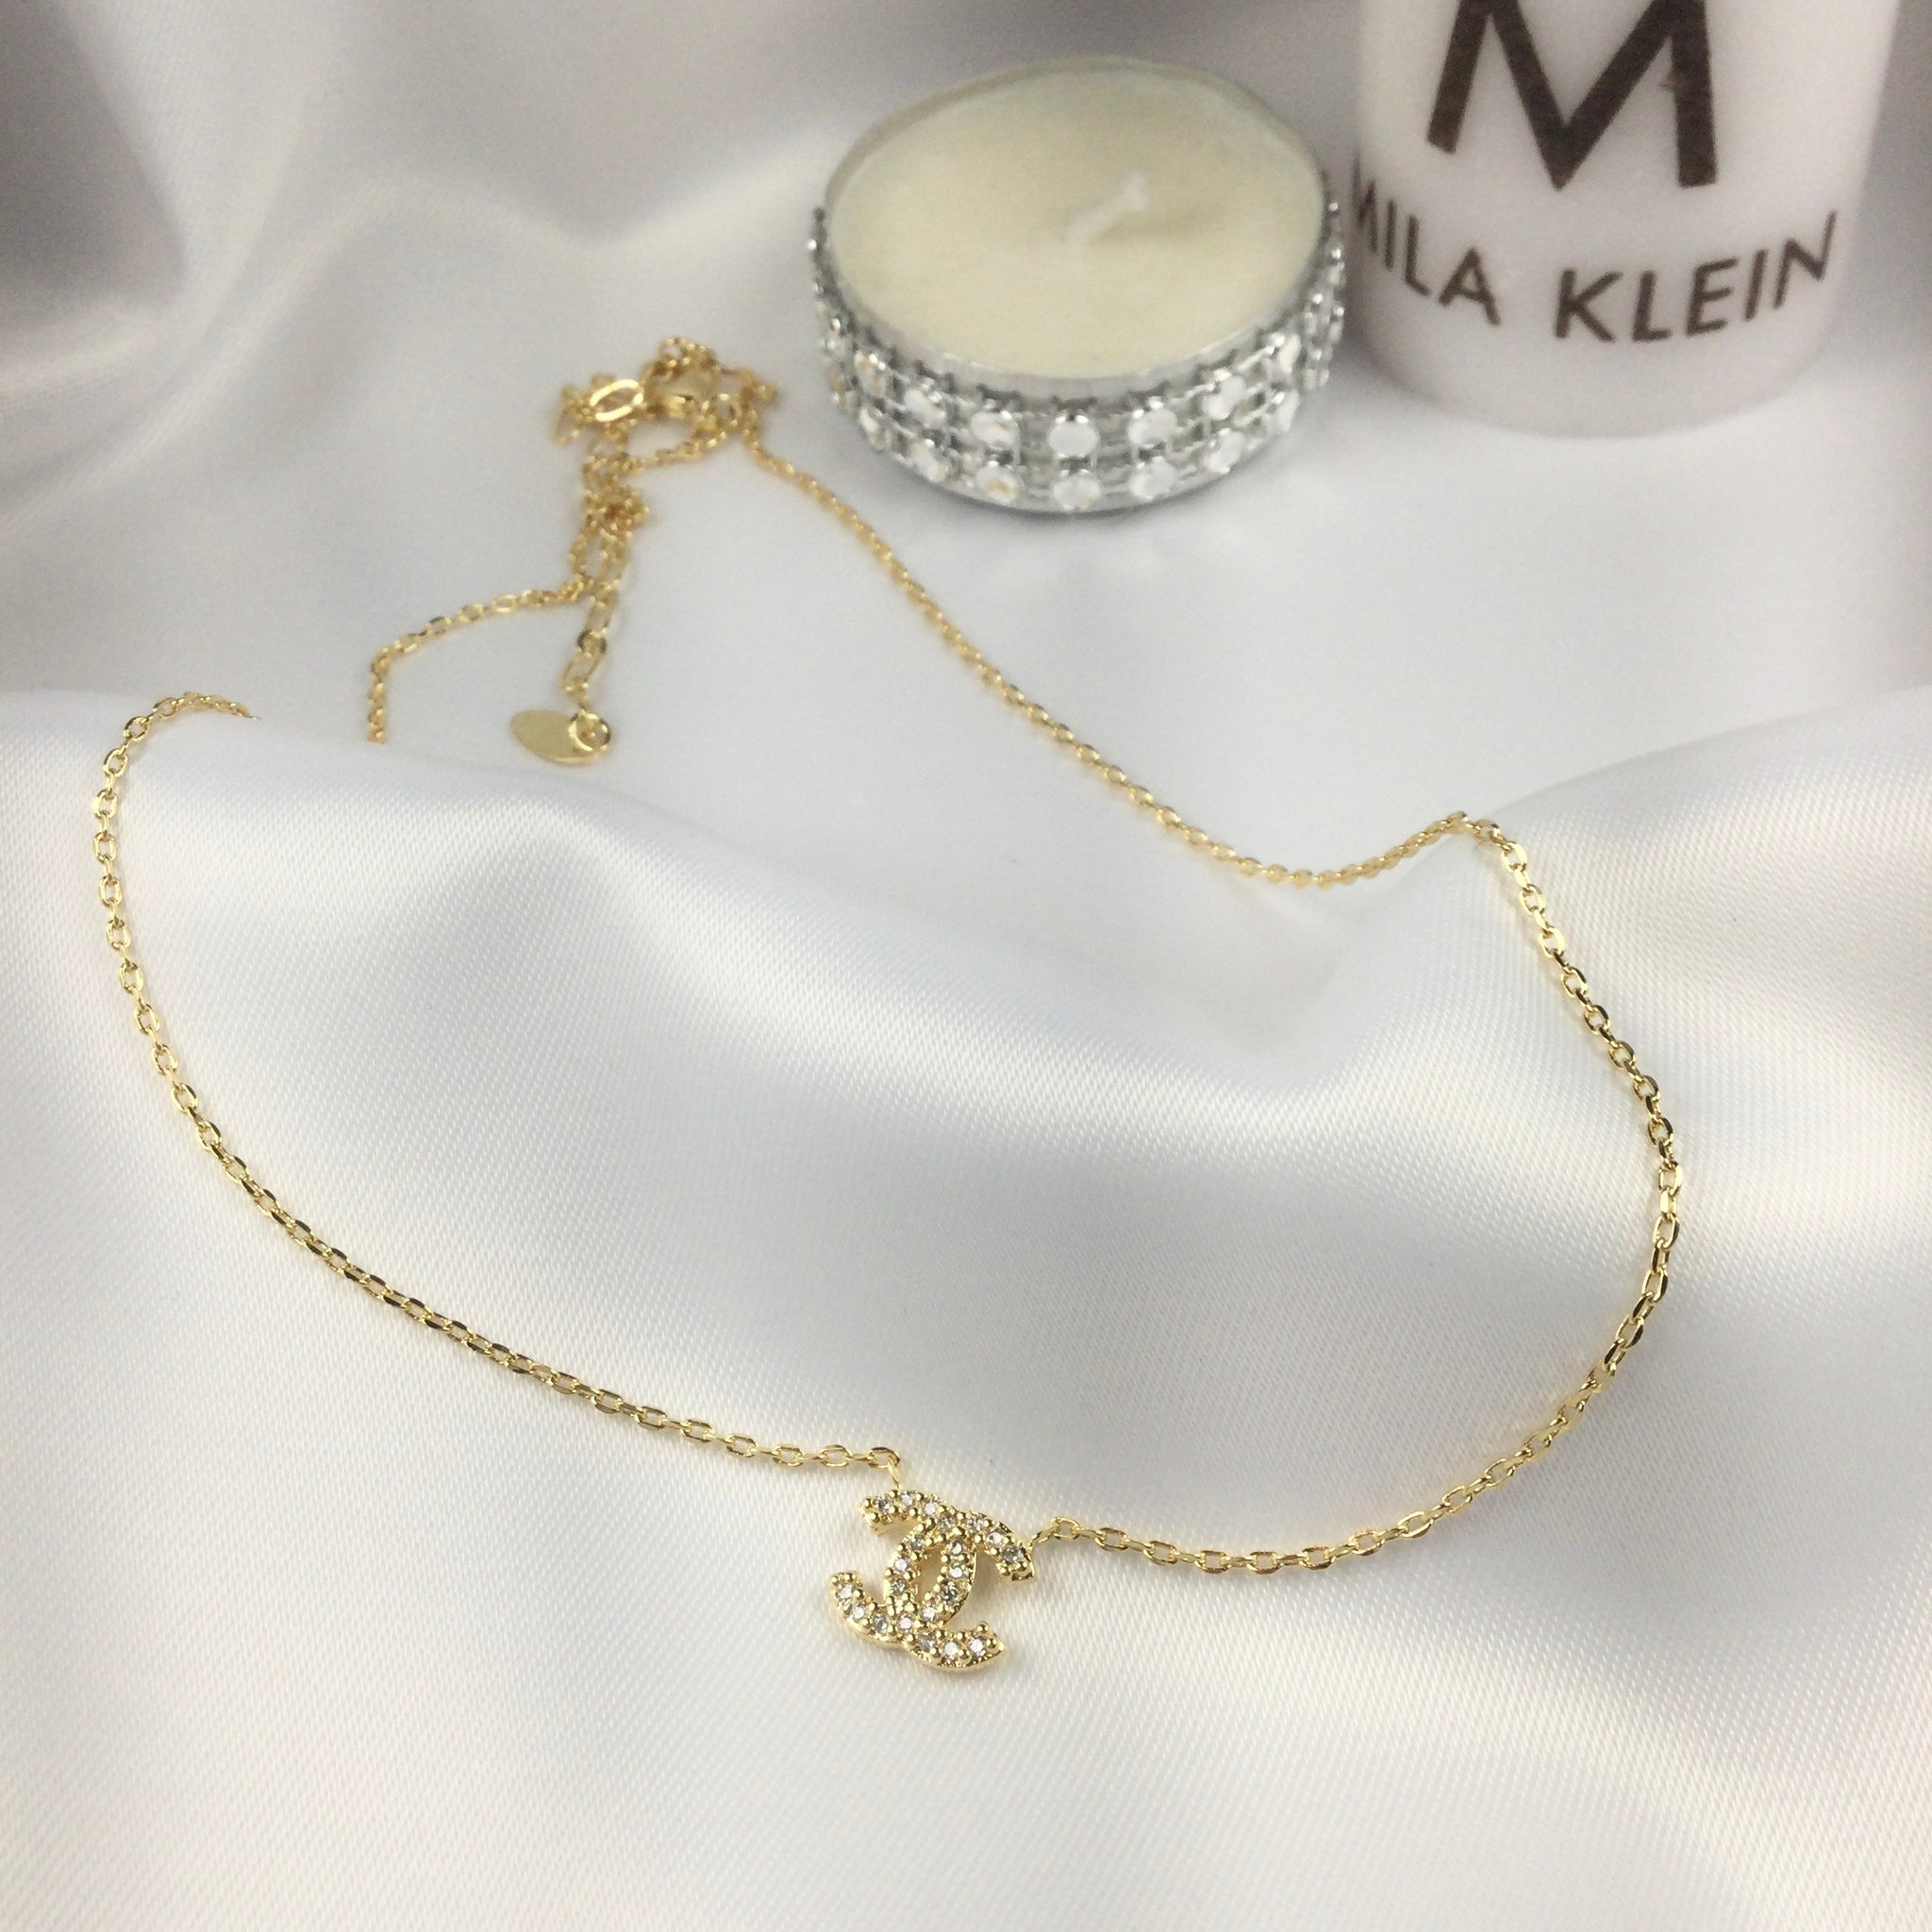 Small Famous Brand Inspired Necklace 18k Gold Plated